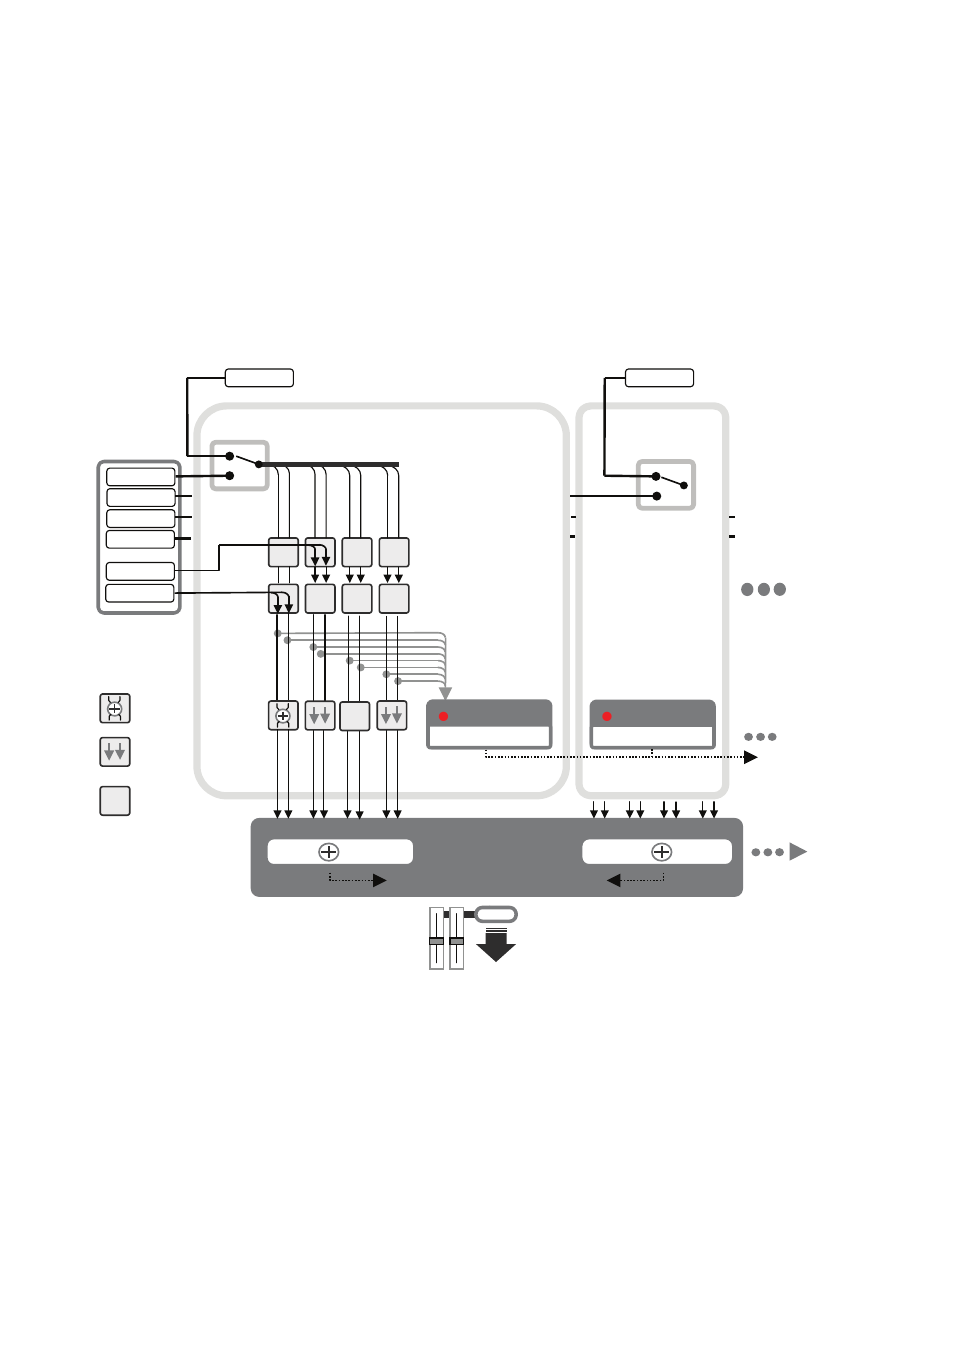 Esi Manual 34988 Robinair Ac Unit Wiring Diagram Array Same Structure As Port 1 Maxio 032 User Page 30 53 Rh